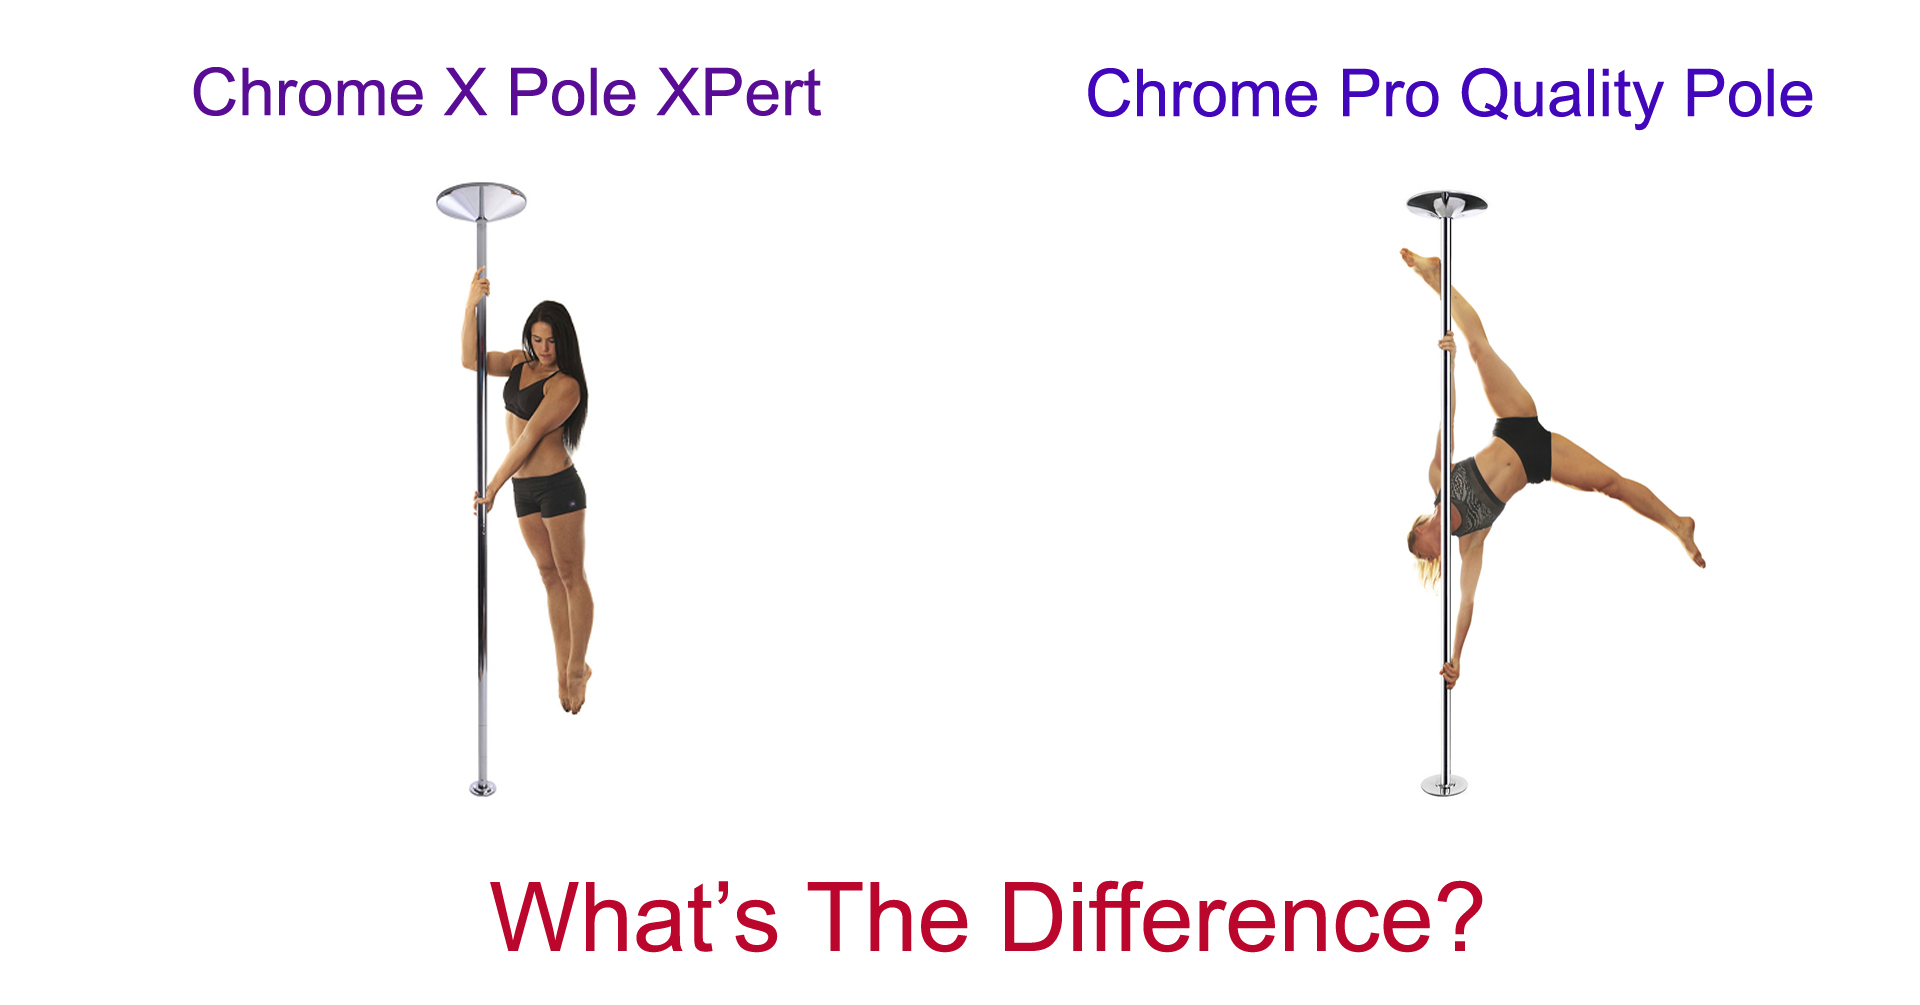 Whats The Difference Between The Chrome X Pole XPert and The PFD Chrome Pro Quality Pole?